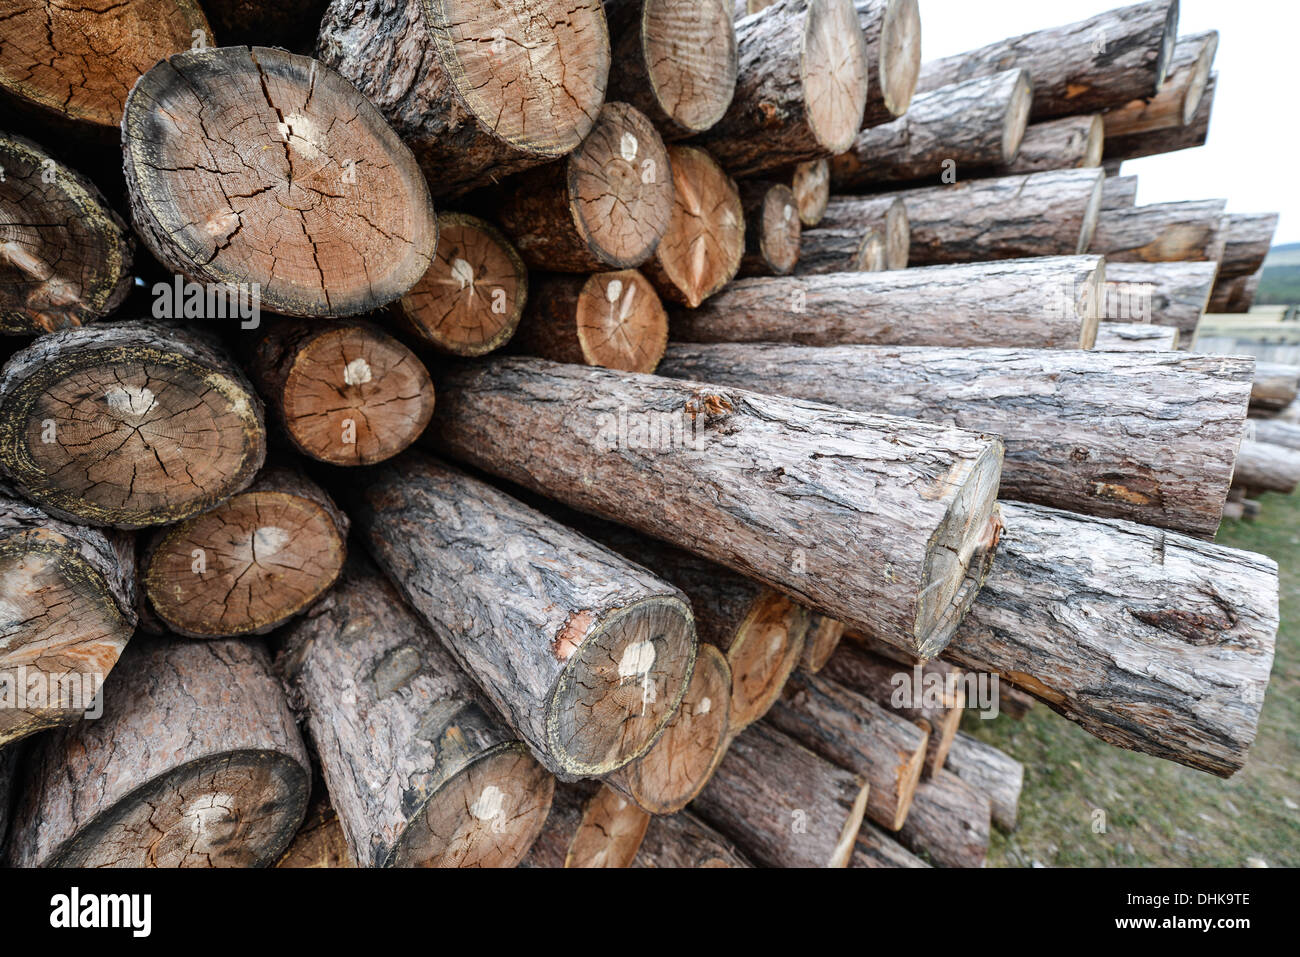 Cut Wooden Logs. Chopped Siberian Logs from Olkhon Island in Lake Baikal, Russia. - Stock Image